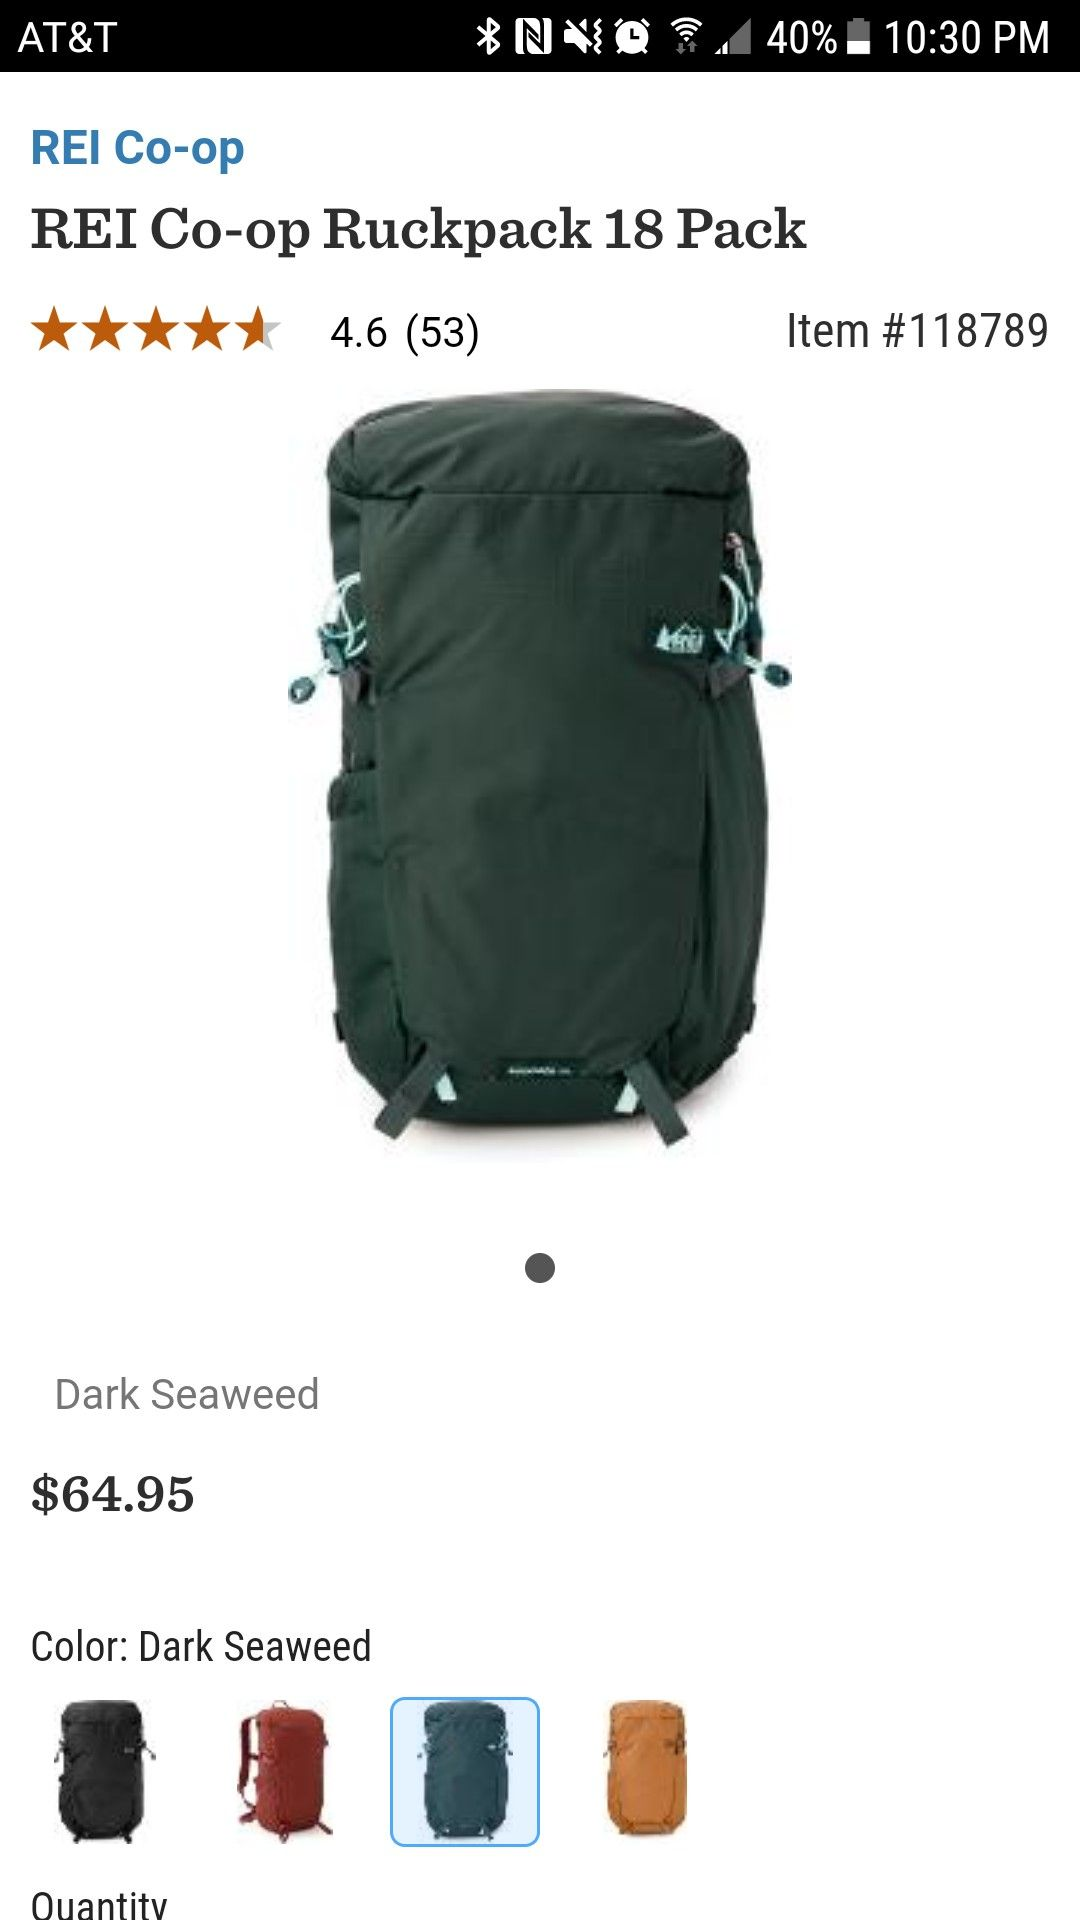 ae52125f0d02 Rei rucksack 18 in dark seaweed This would make a good day hiking pack.